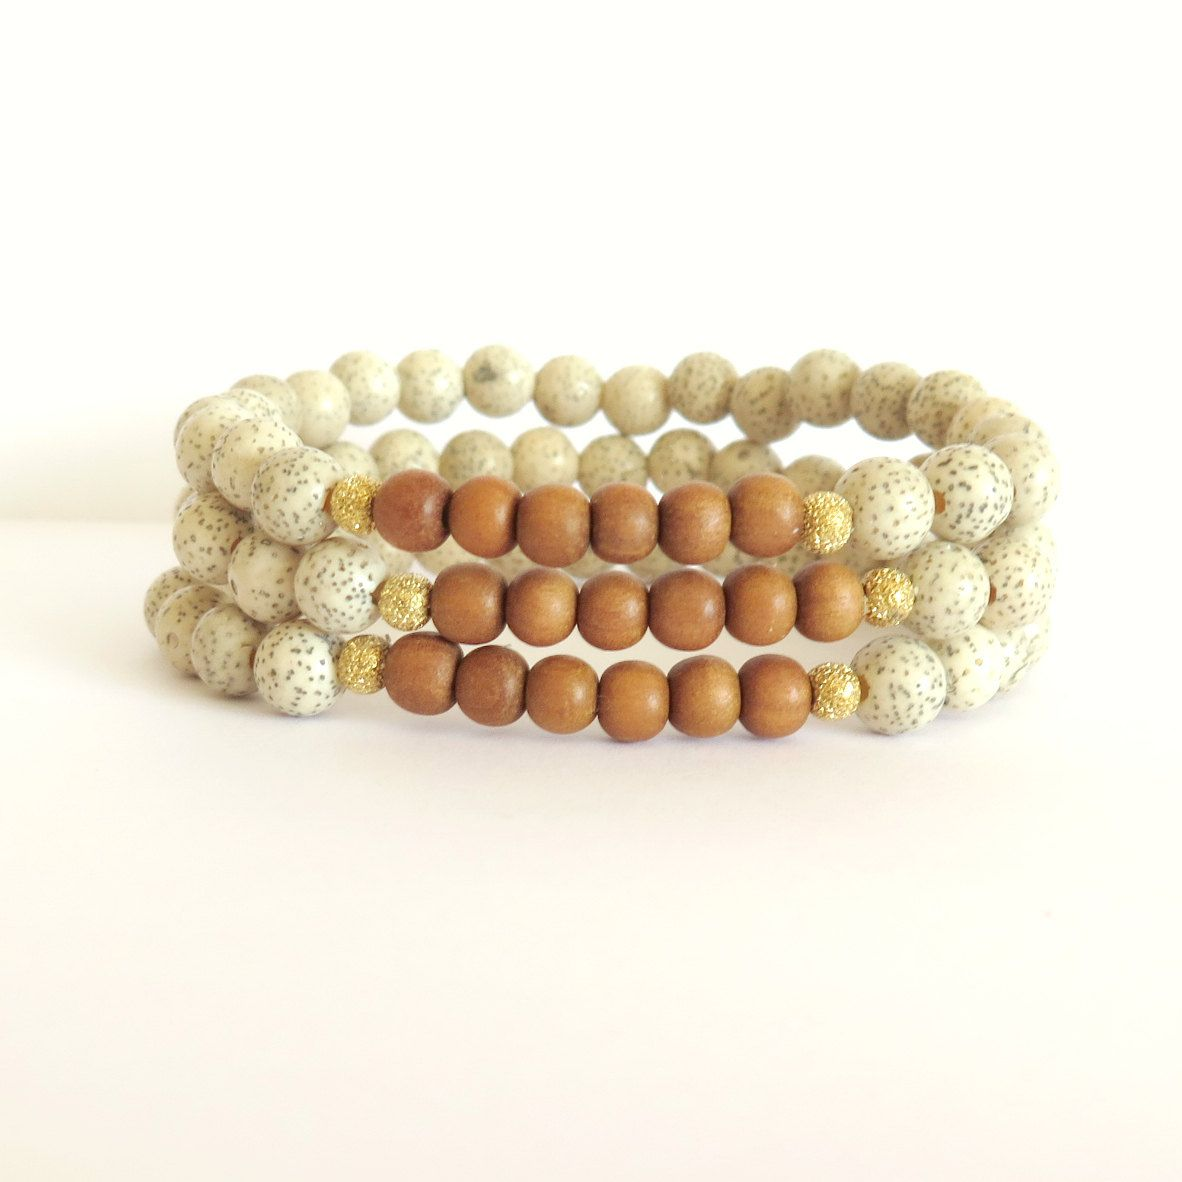 White Lotus Seed Bracelet with Fragrant Indian Sandalwood / Boho Chic Bracelet / Meditation / Yoga Jewelry / Minimalist Eco Friendly Chic by theblackstarboutique on Etsy https://www.etsy.com/listing/251218269/white-lotus-seed-bracelet-with-fragrant